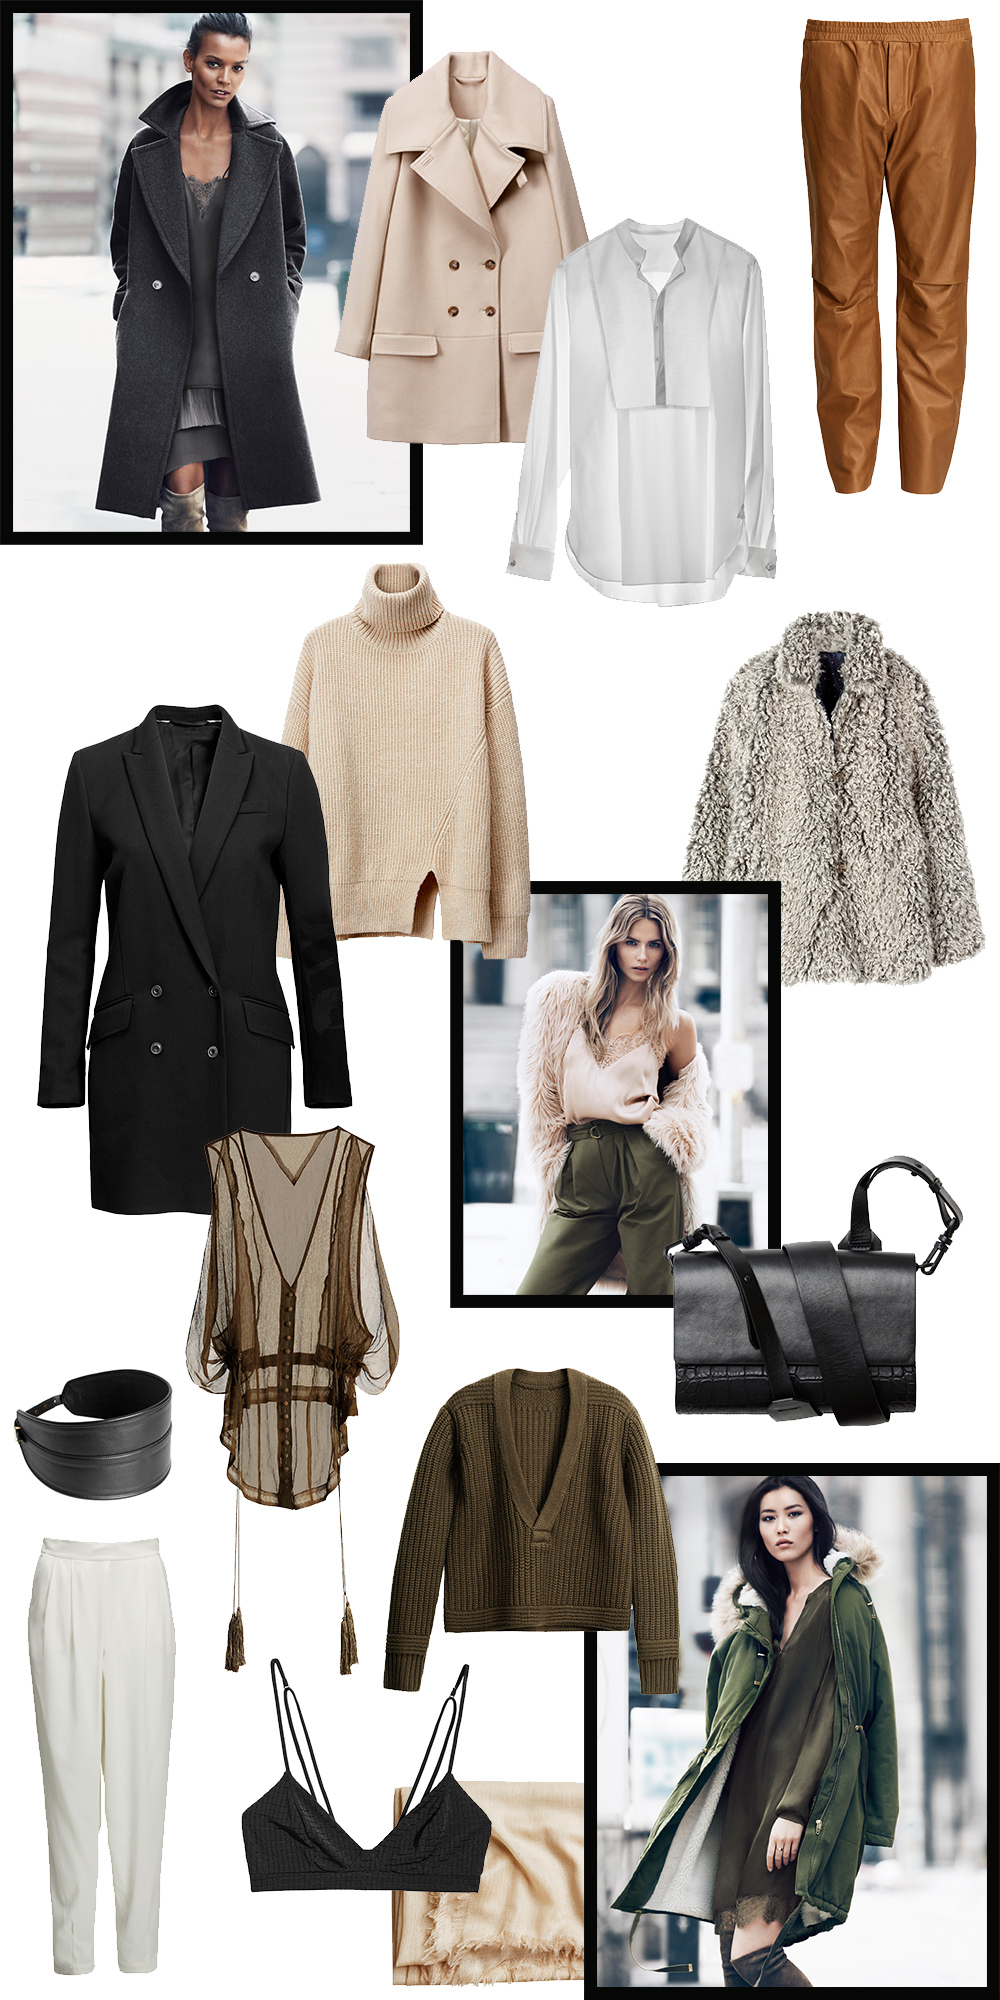 who is mocca, fashionblog tirol, fashionblog österreich, H&M Kollektion herbst winter 14 15, autumn winter, alexander wang, lady gaga, tony benett